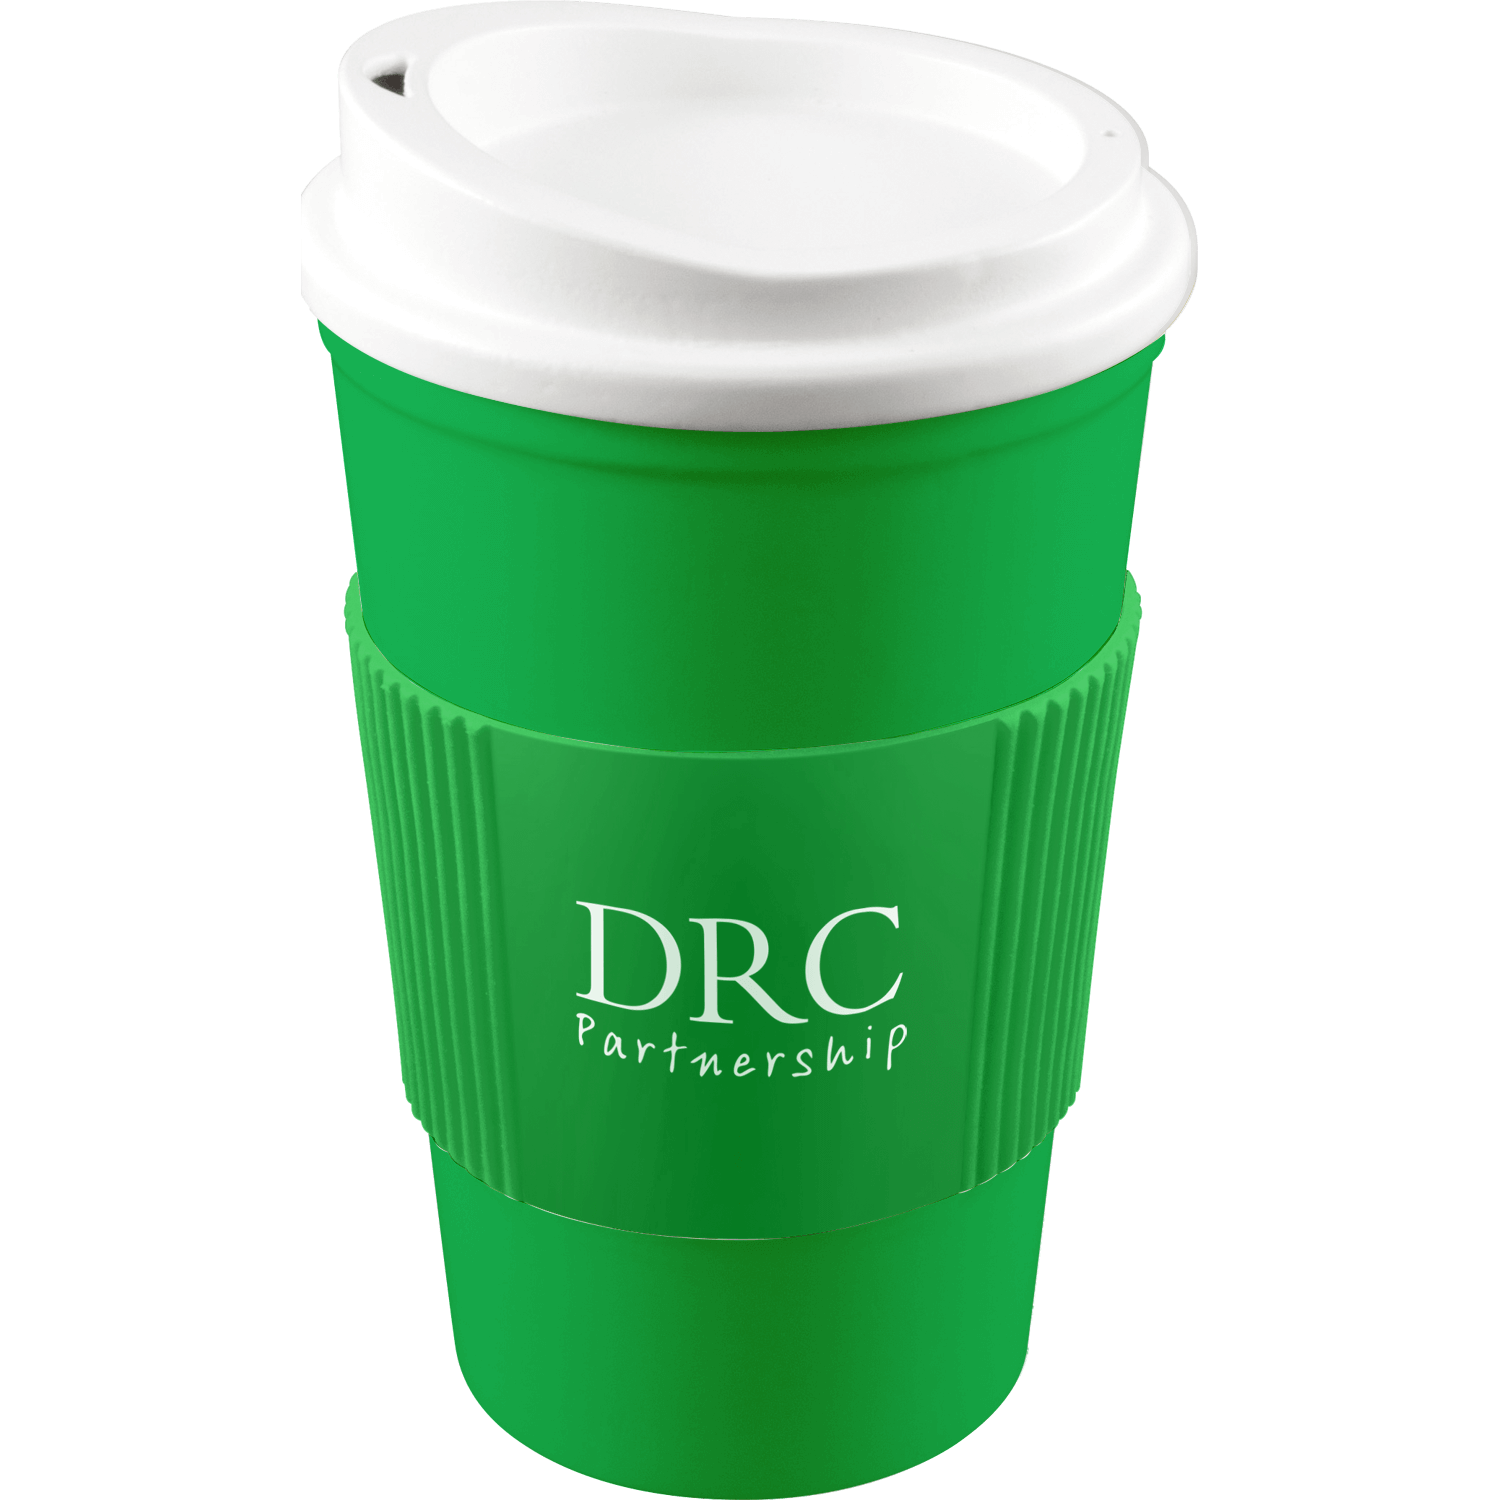 Green Mug (7481) - White Lid - Green Grip (7481)